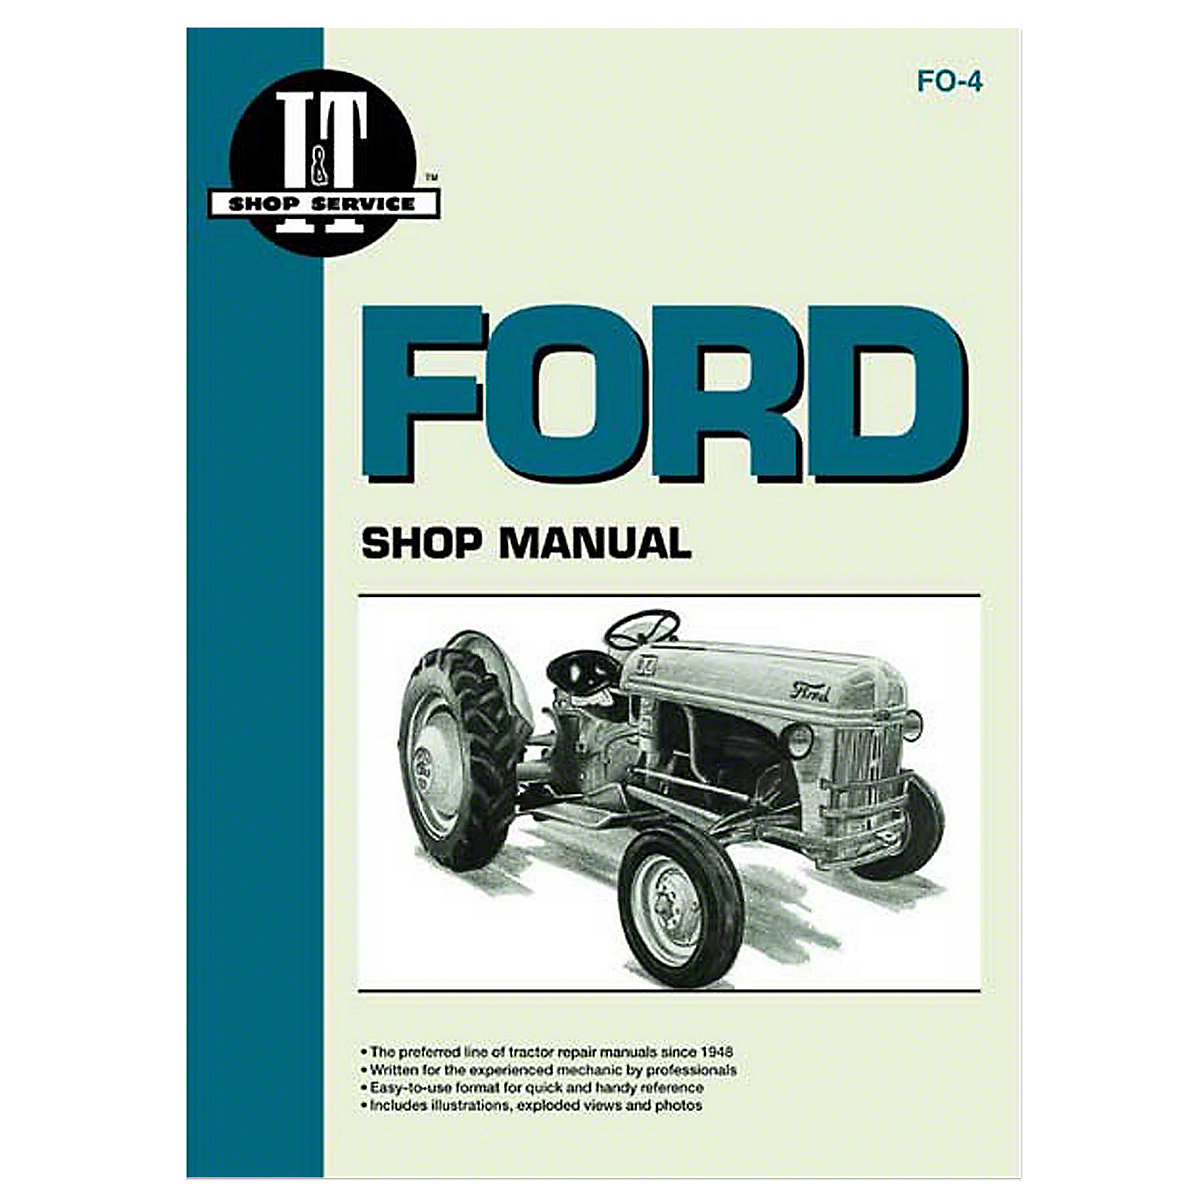 fo4 i t shop service manual rh steinertractor com Ford Jubilee Tractor Firing Order Ford Jubilee Tractor Attachments